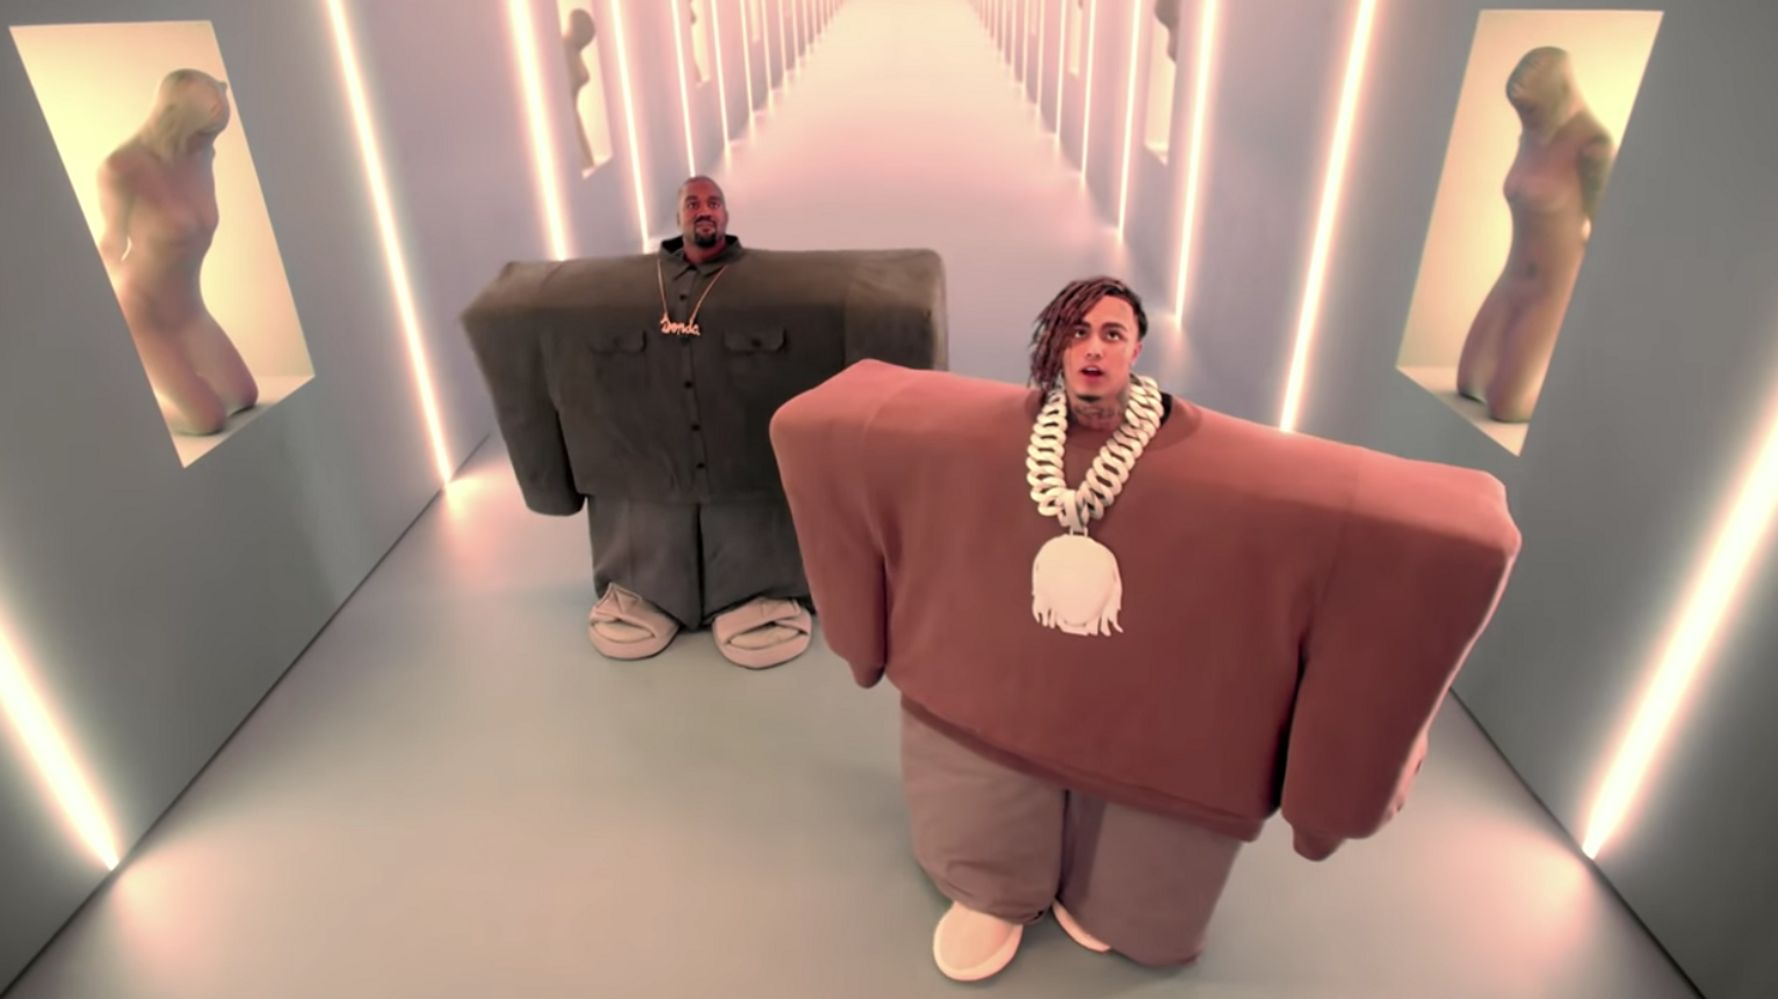 Your Such A Roblox Nerd Lyrics - Kanye West Lil Pumps New Song Youre Such A Fking Ho